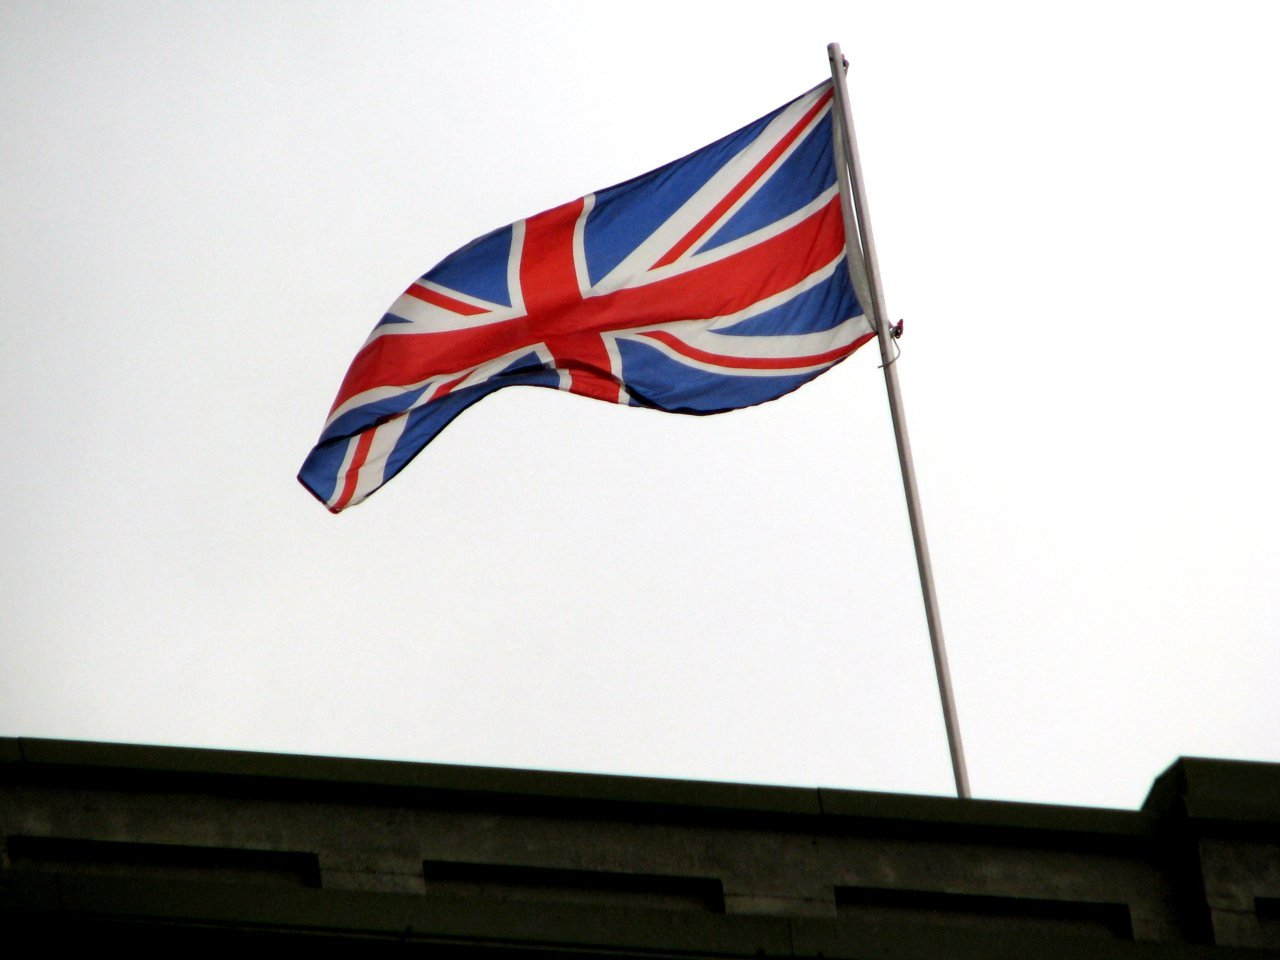 The Union Jack The flag of England flew over Canada, first as an English colony, then the Dominion of Canada presided over by Sir John A. MacDonald.  Those Americans that did not want to revolt against England (yes, there were some!) moved north of the 49th parallel and remained loyalists. Canada's sovereignty was won by negotiation, not blood.